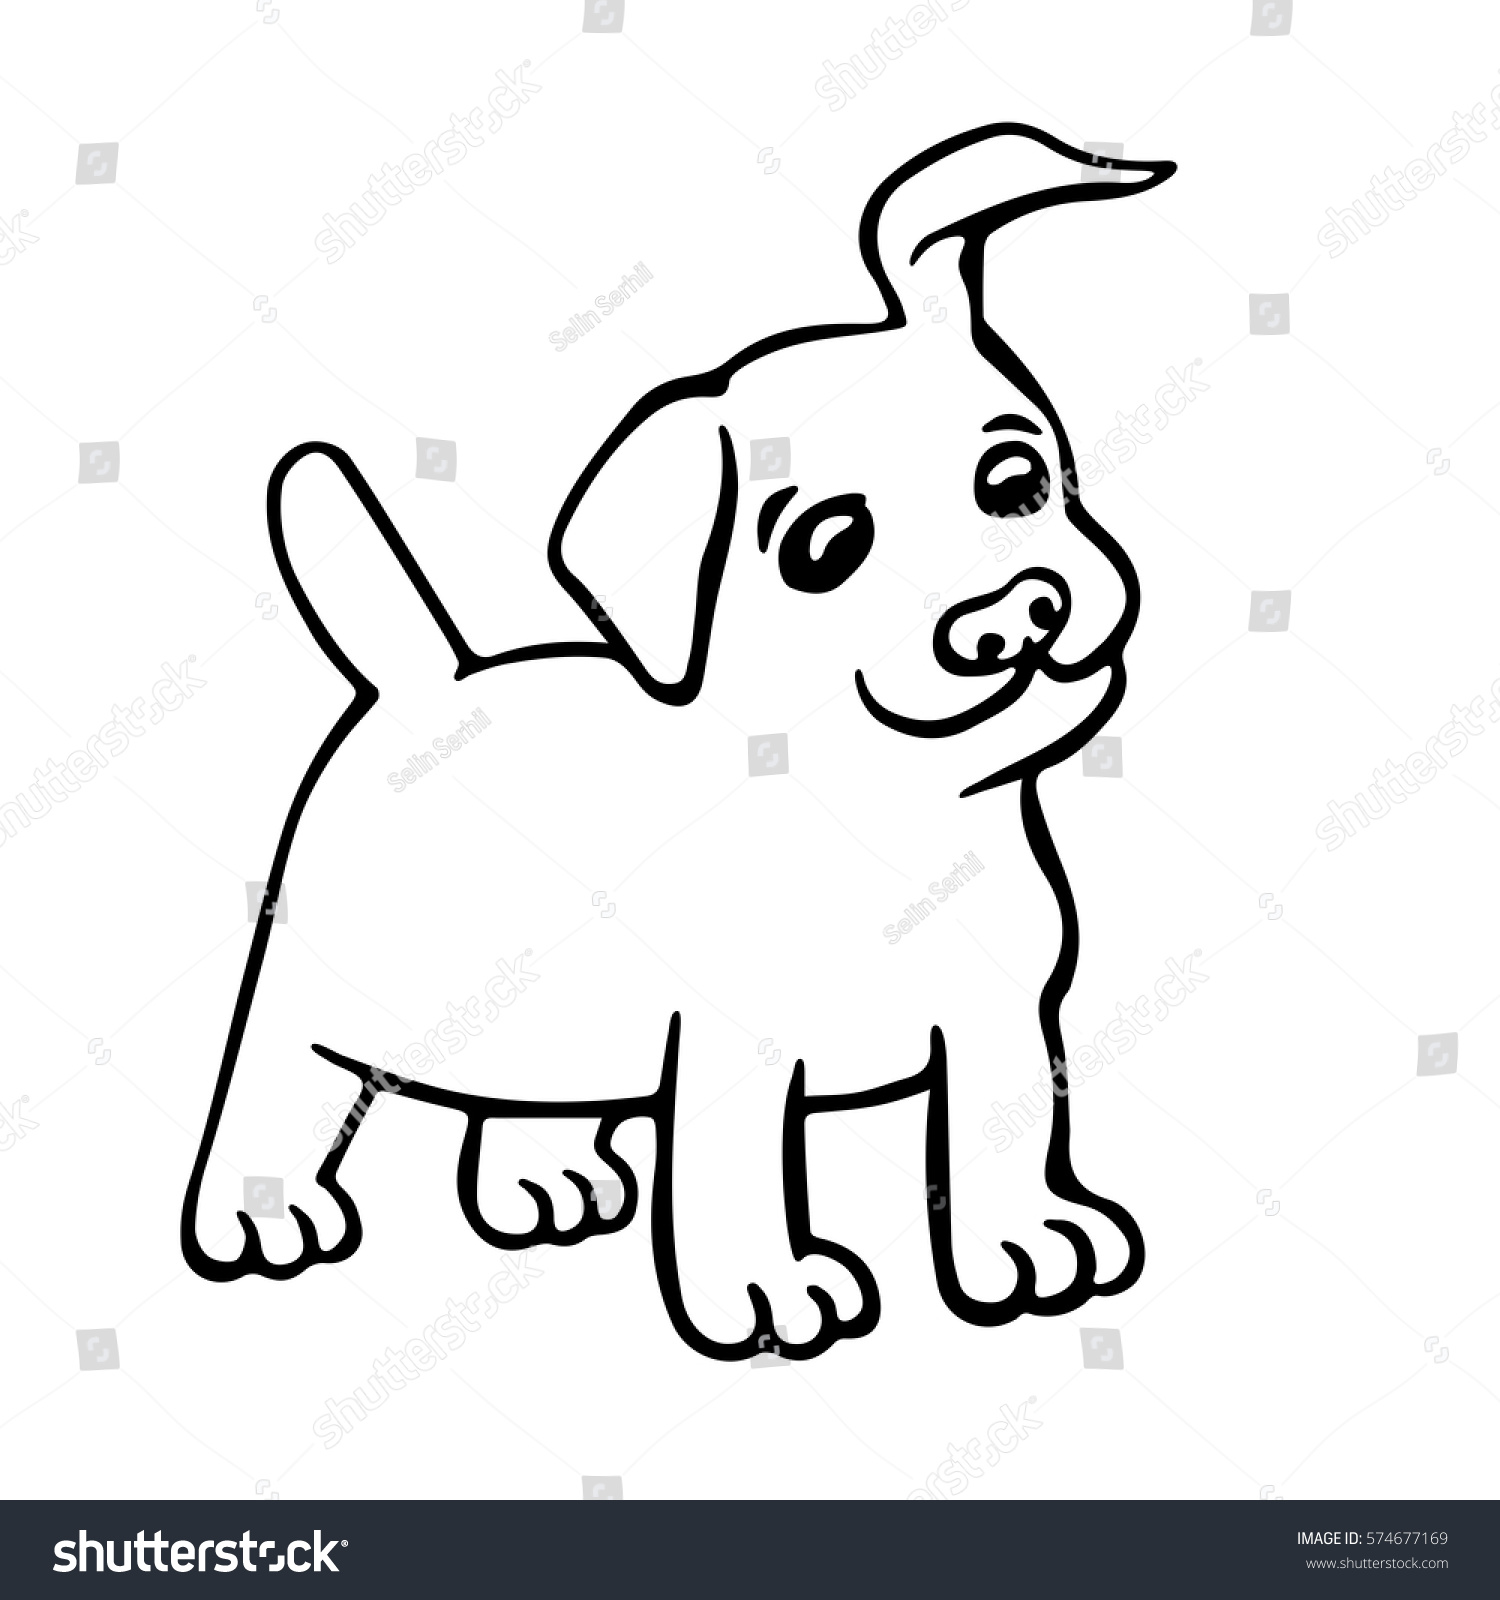 1500x1600 Drawing Cartoon Puppy Drawing With Cute Cartoon Puppy Drawing